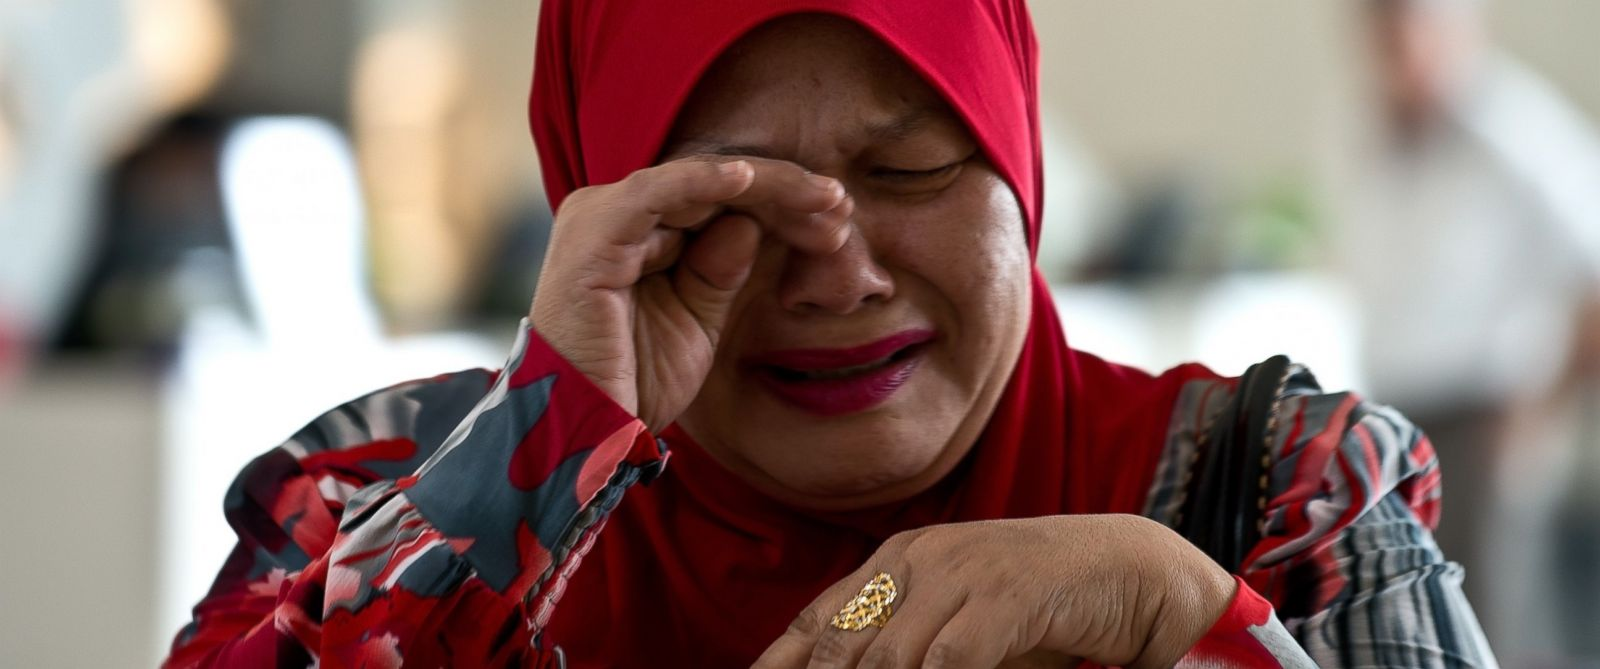 PHOTO: A relative of a passenger onboard missing Malaysia Airlines flight MH370 cries in Putrajaya, Malaysia on March 12, 2014.